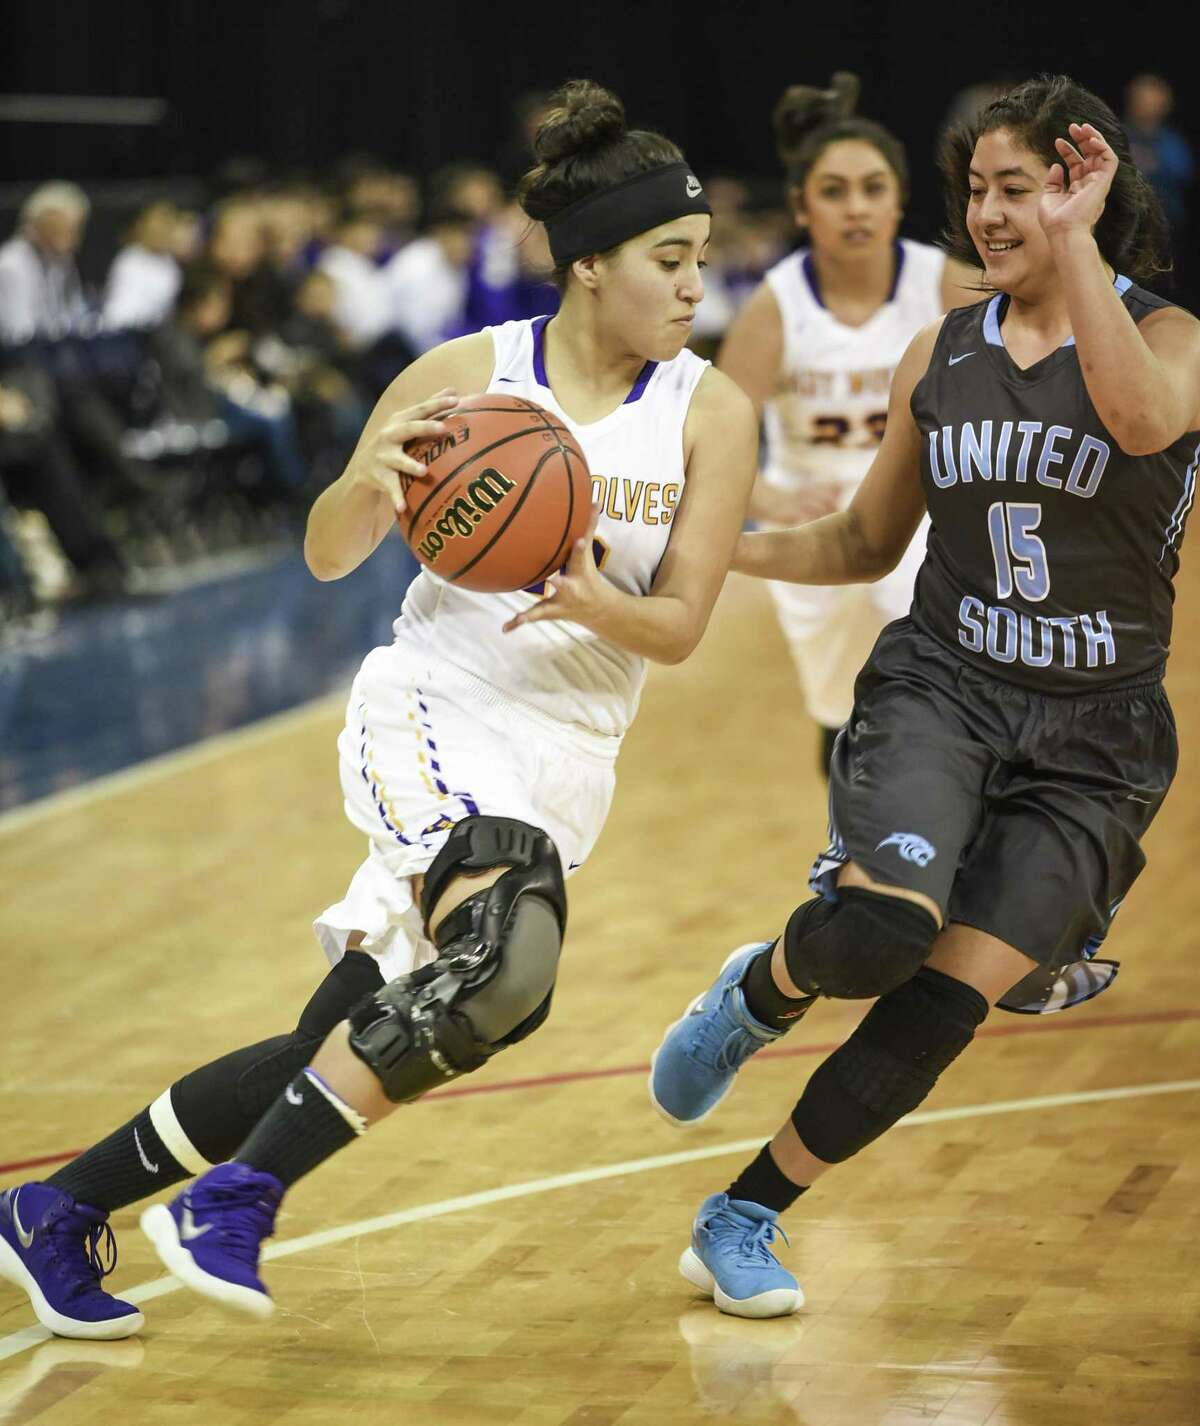 United South faces LBJ at 4:30 p.m. Friday at Laredo Energy Arena. The Lady Panthers are attempting to keep pace atop the district standings while the Lady Wolves search for their first win in league play.